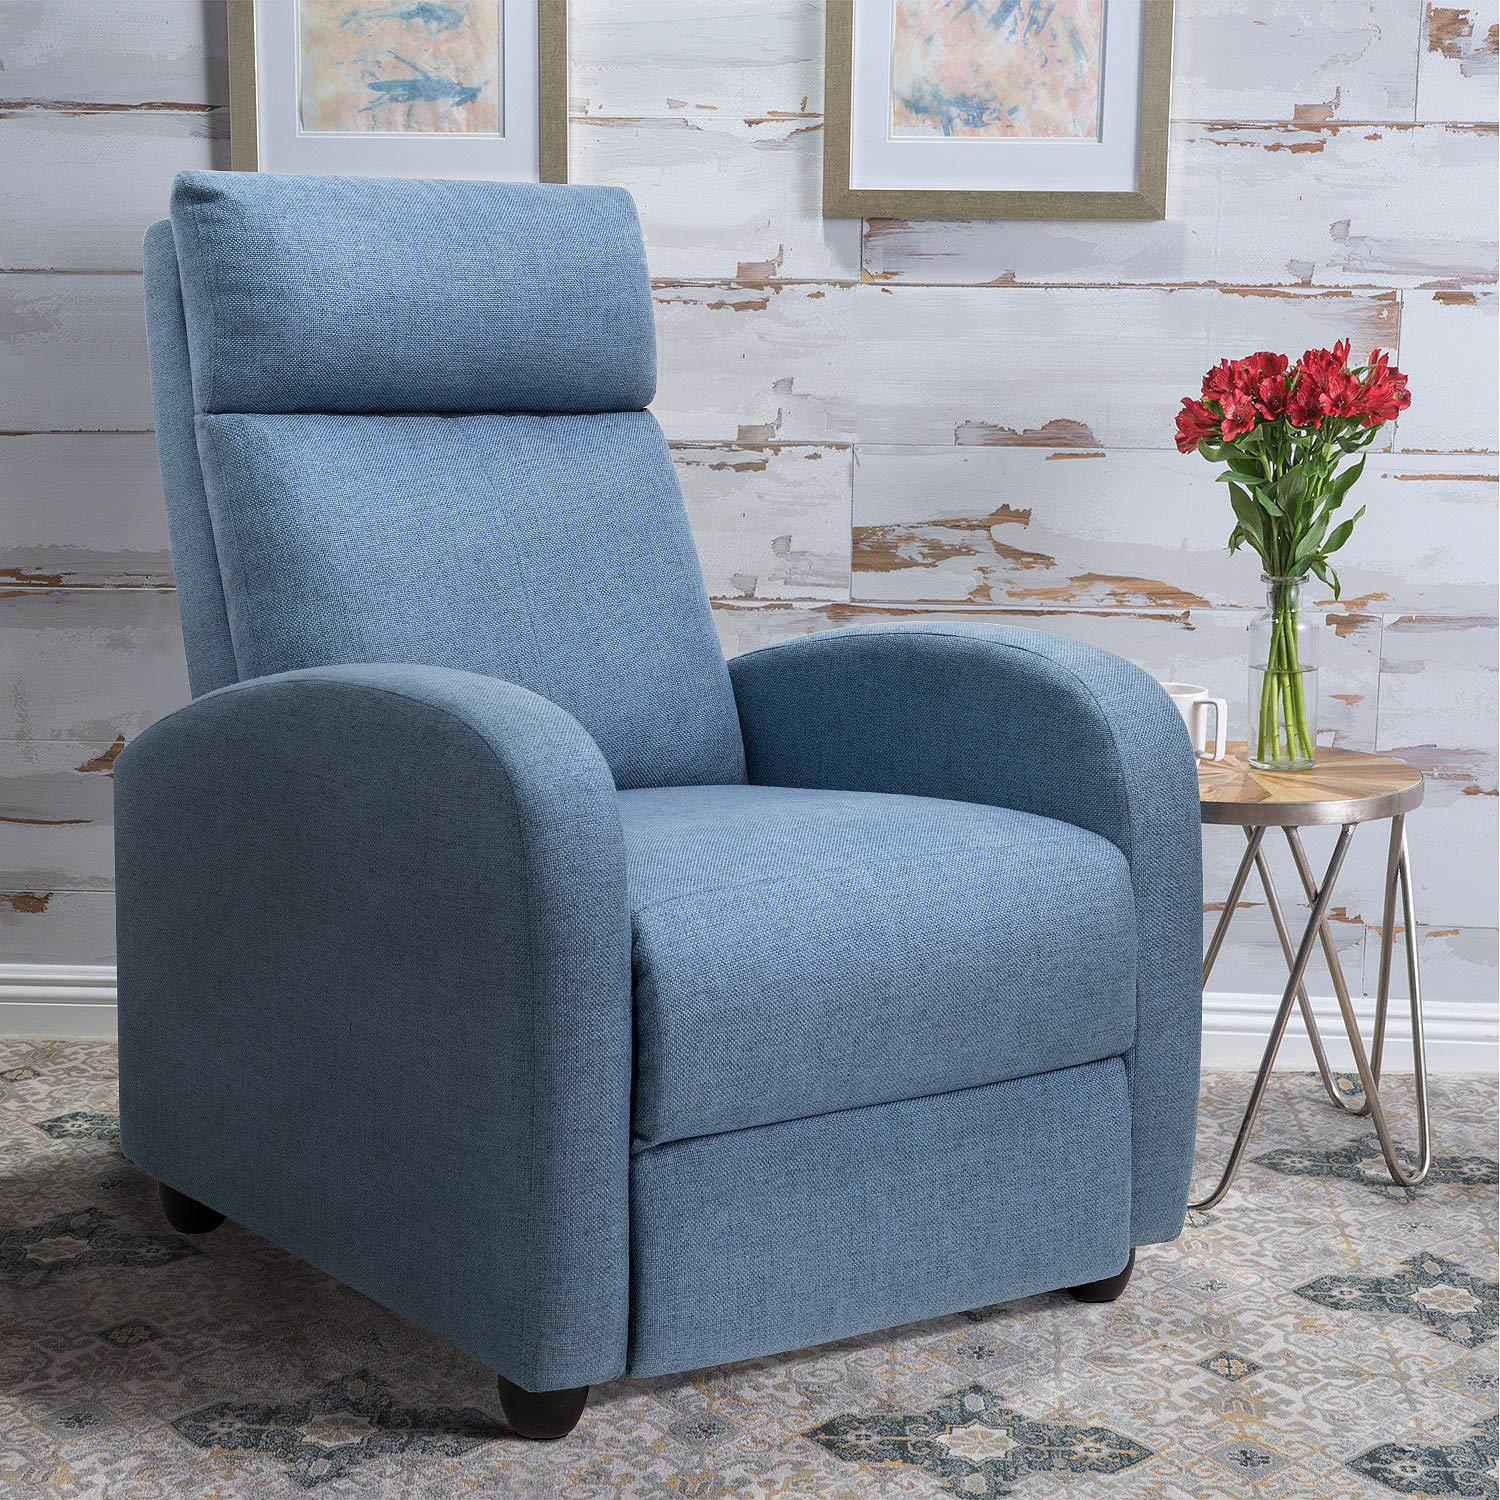 Tuoze Fabric most comfortable reading chair